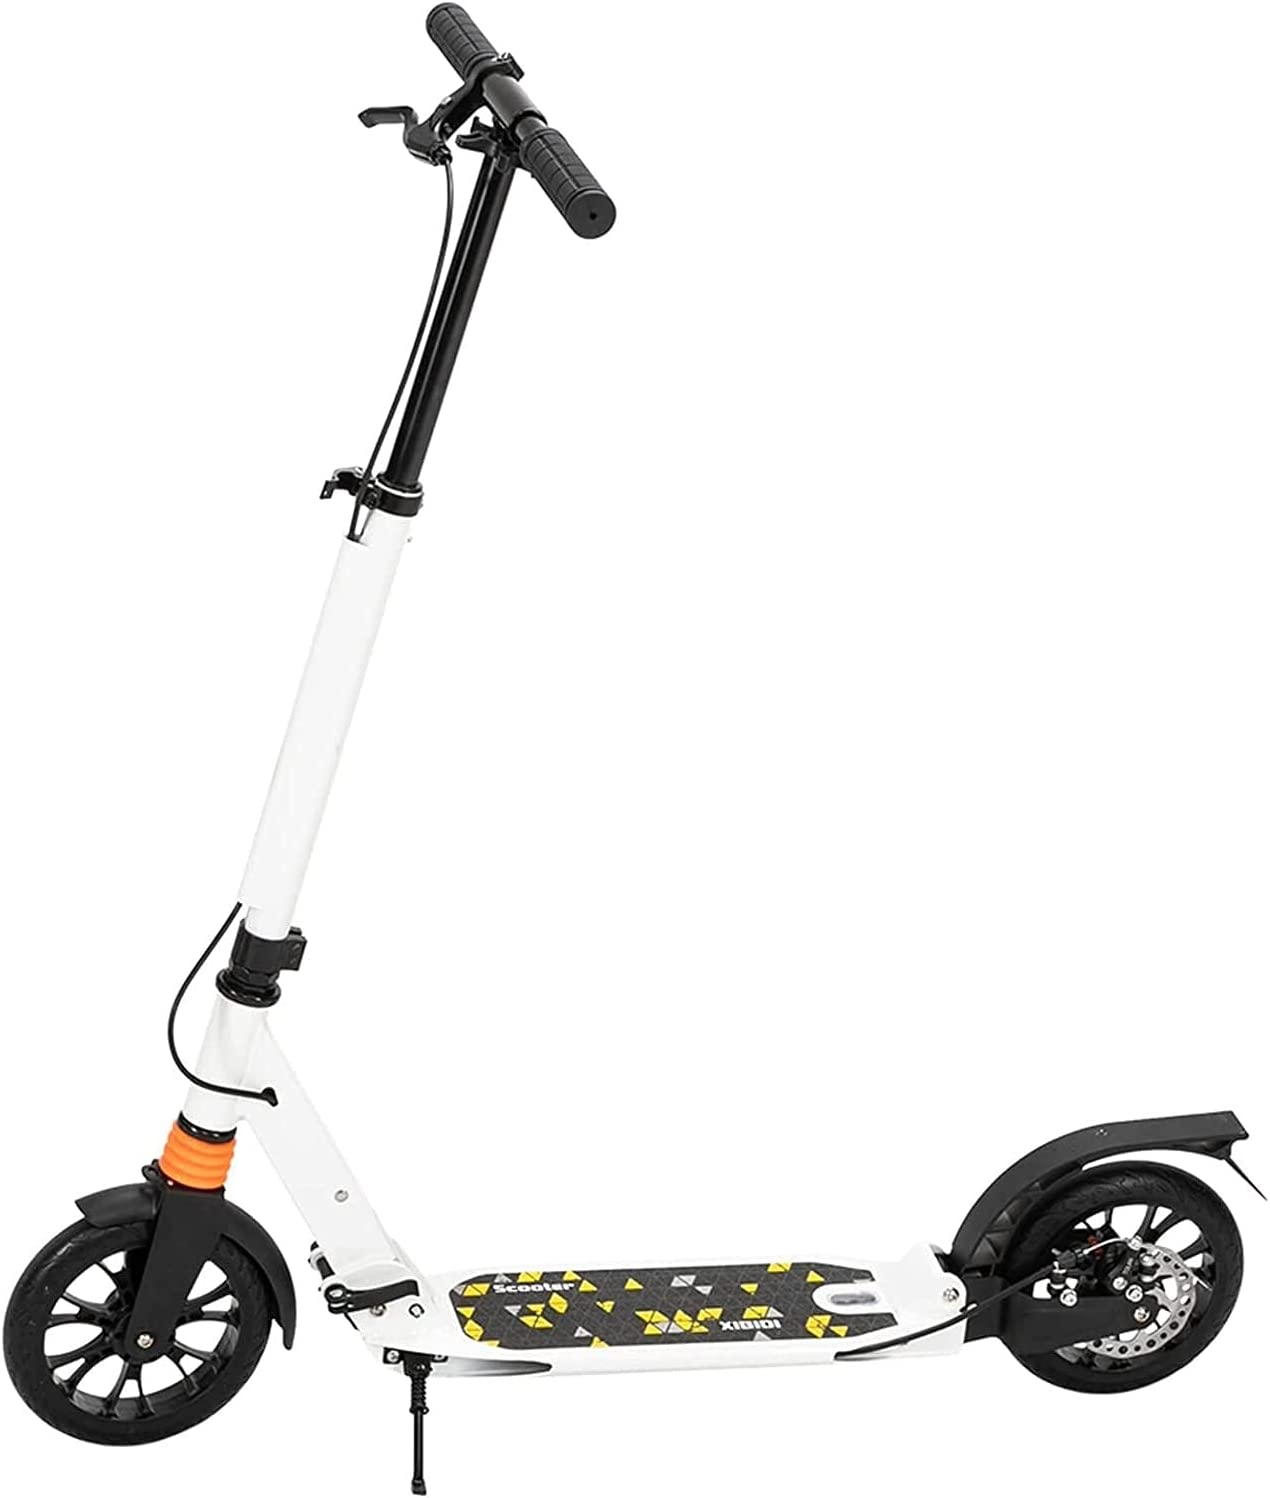 ZHOUZHONGLAN Portable Scooter Compatible 3 Super sale period NEW before selling limited Heig AdultTeens with